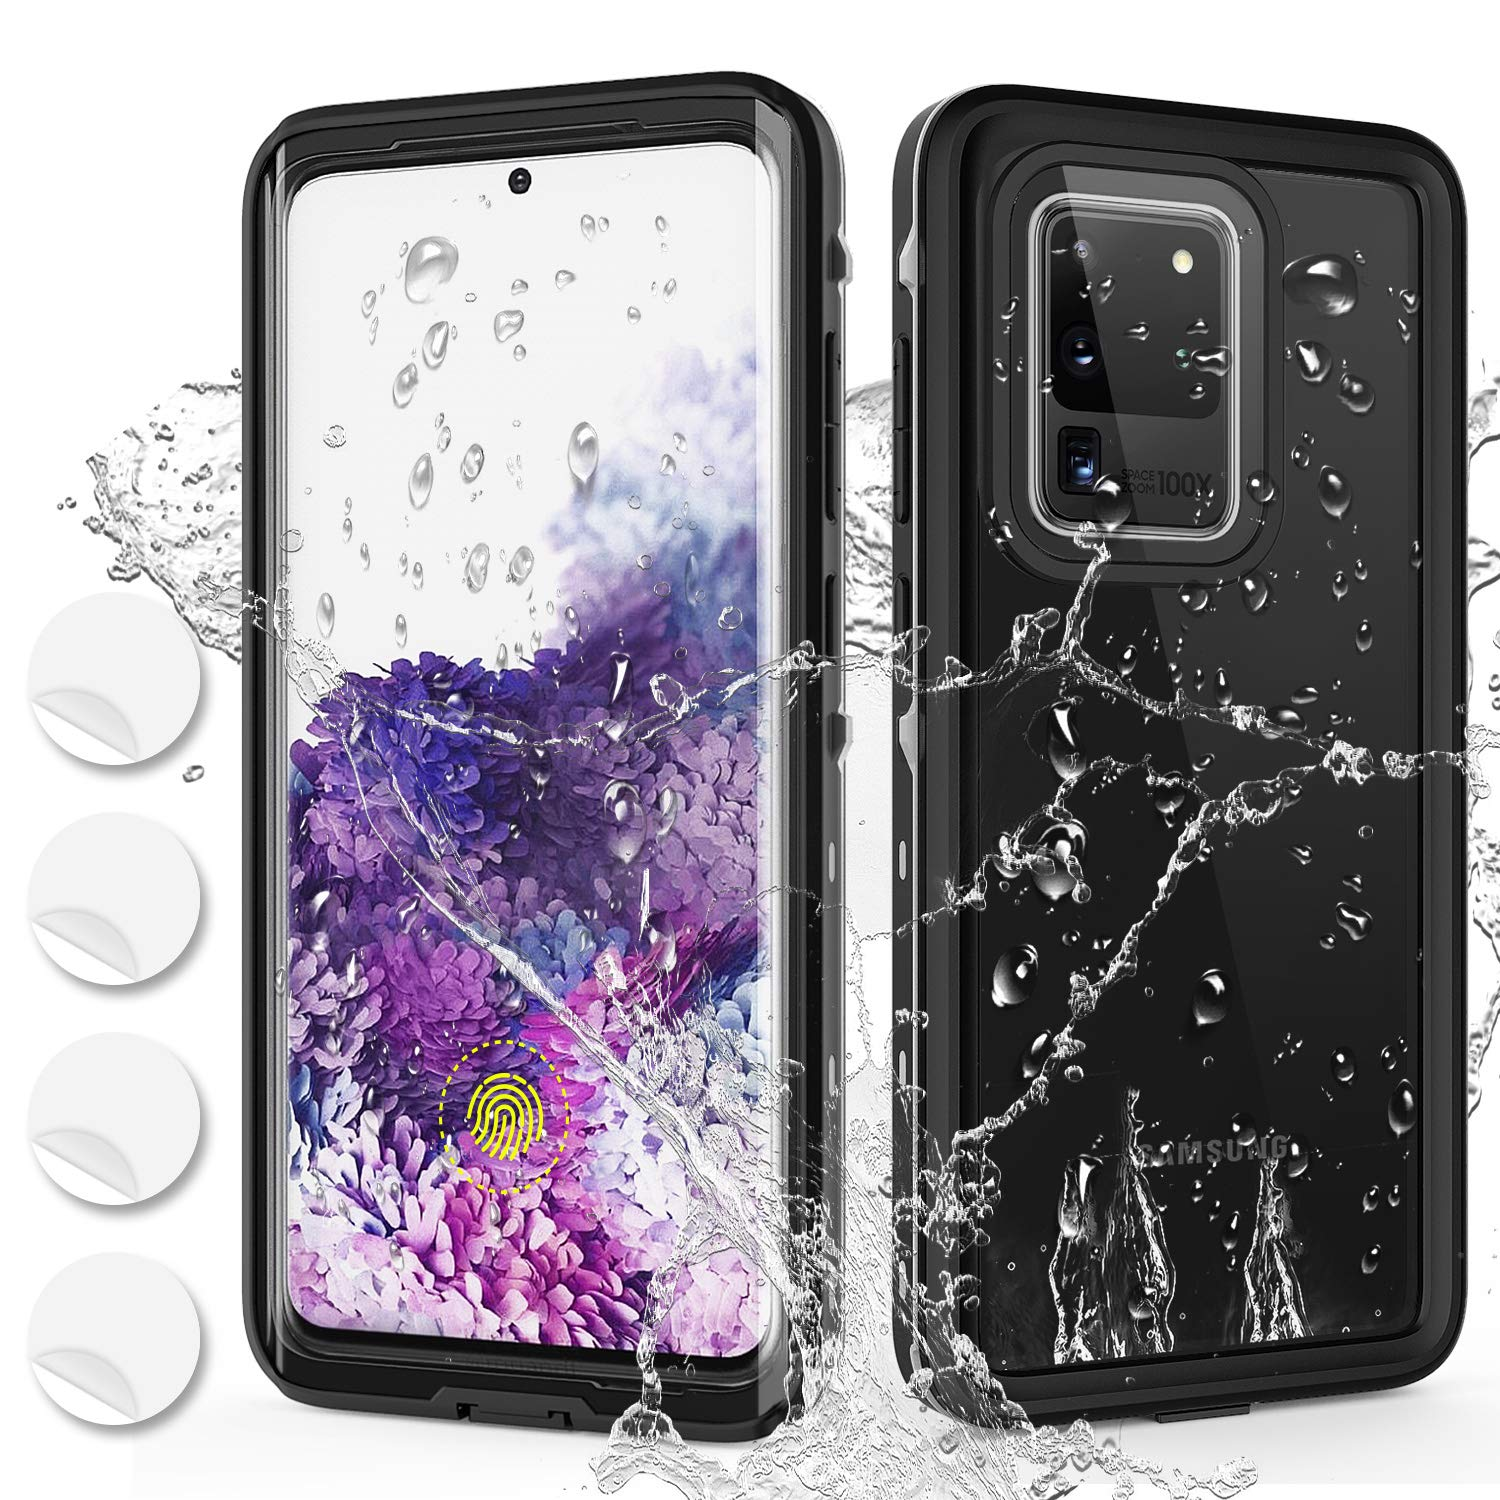 Samsung Galaxy S20 Ultra Waterproof Case Built-in Screen Protector IP68 Certified Full Body Protection Shockproof Underwater Cover Shell